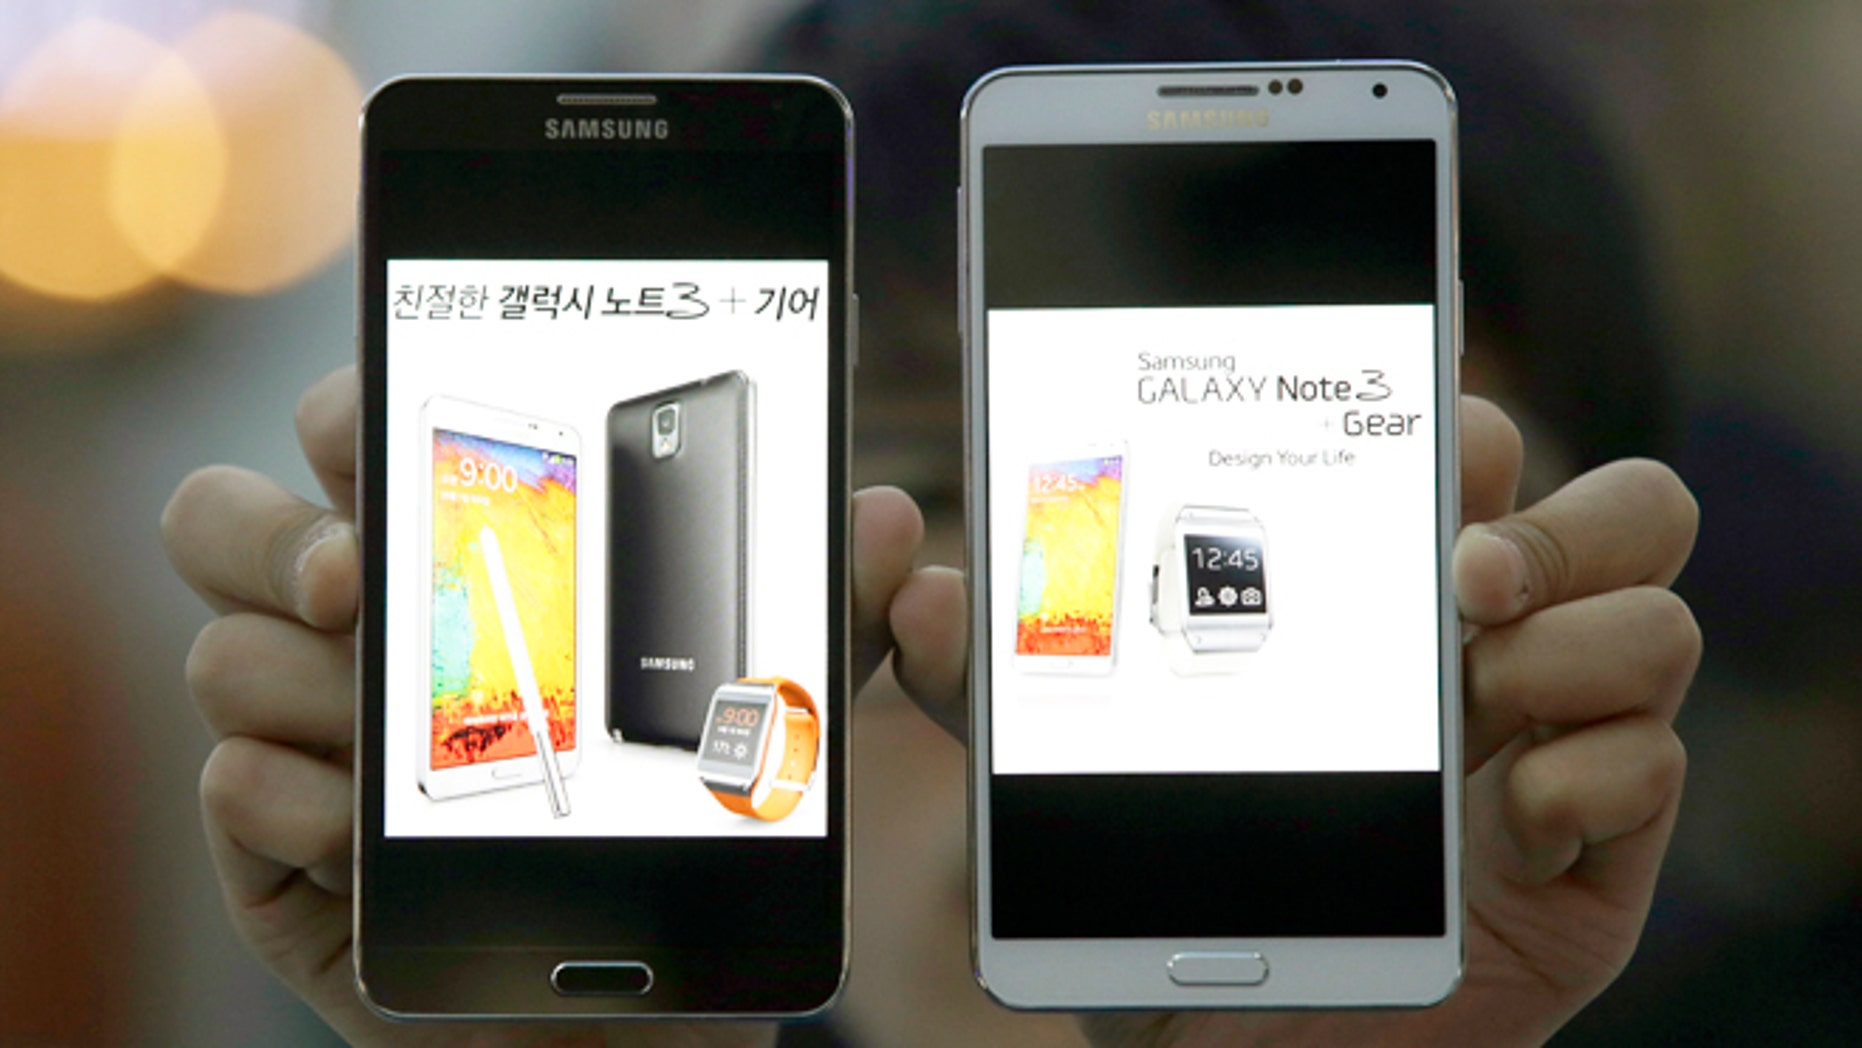 Oct. 23, 2013: An employee of Samsung Electronics holds two Galaxy Note 3 smartphones while posing for photos at a train station in Seoul, South Korea.